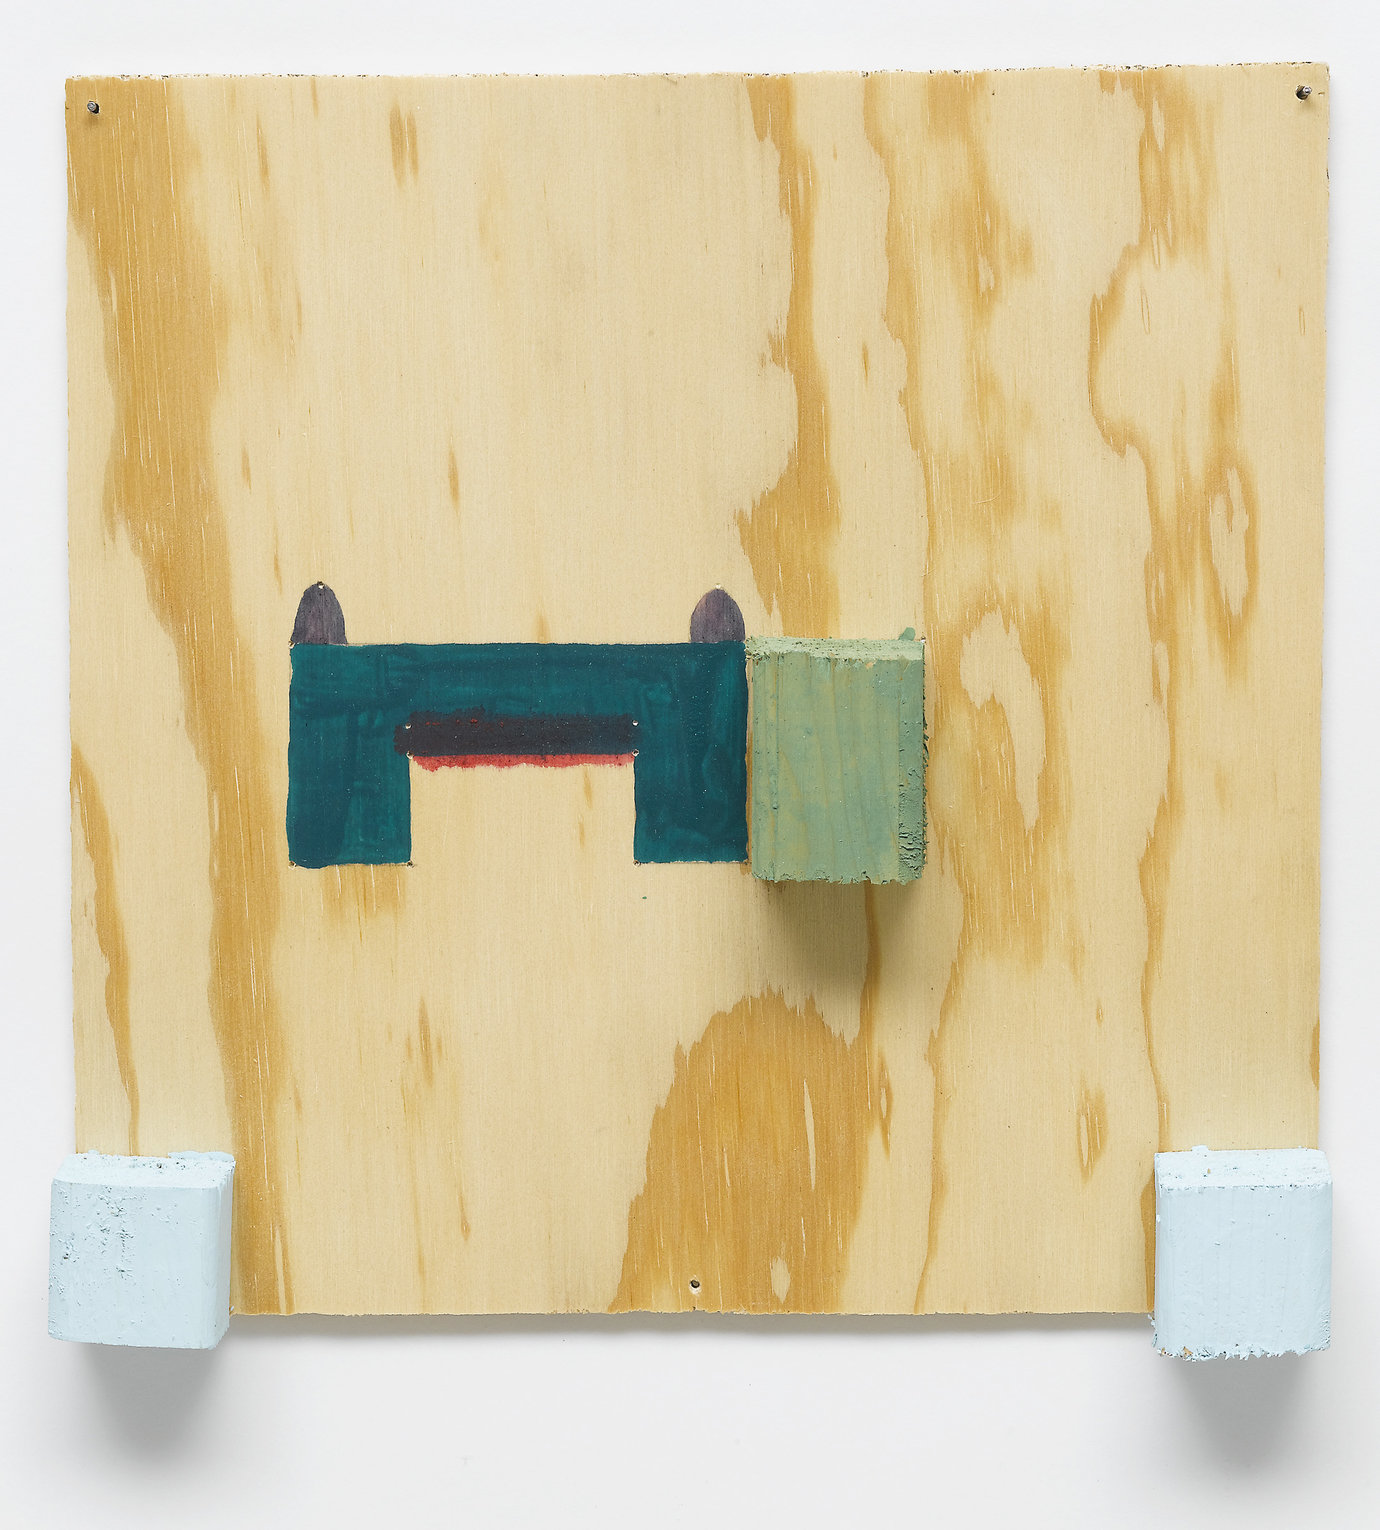 ", 1999. Acrylic on fir plywood, 11"" x 11"" x 1-3/4"" (27.9 cm x 27.9 cm x 4.4 cm)."